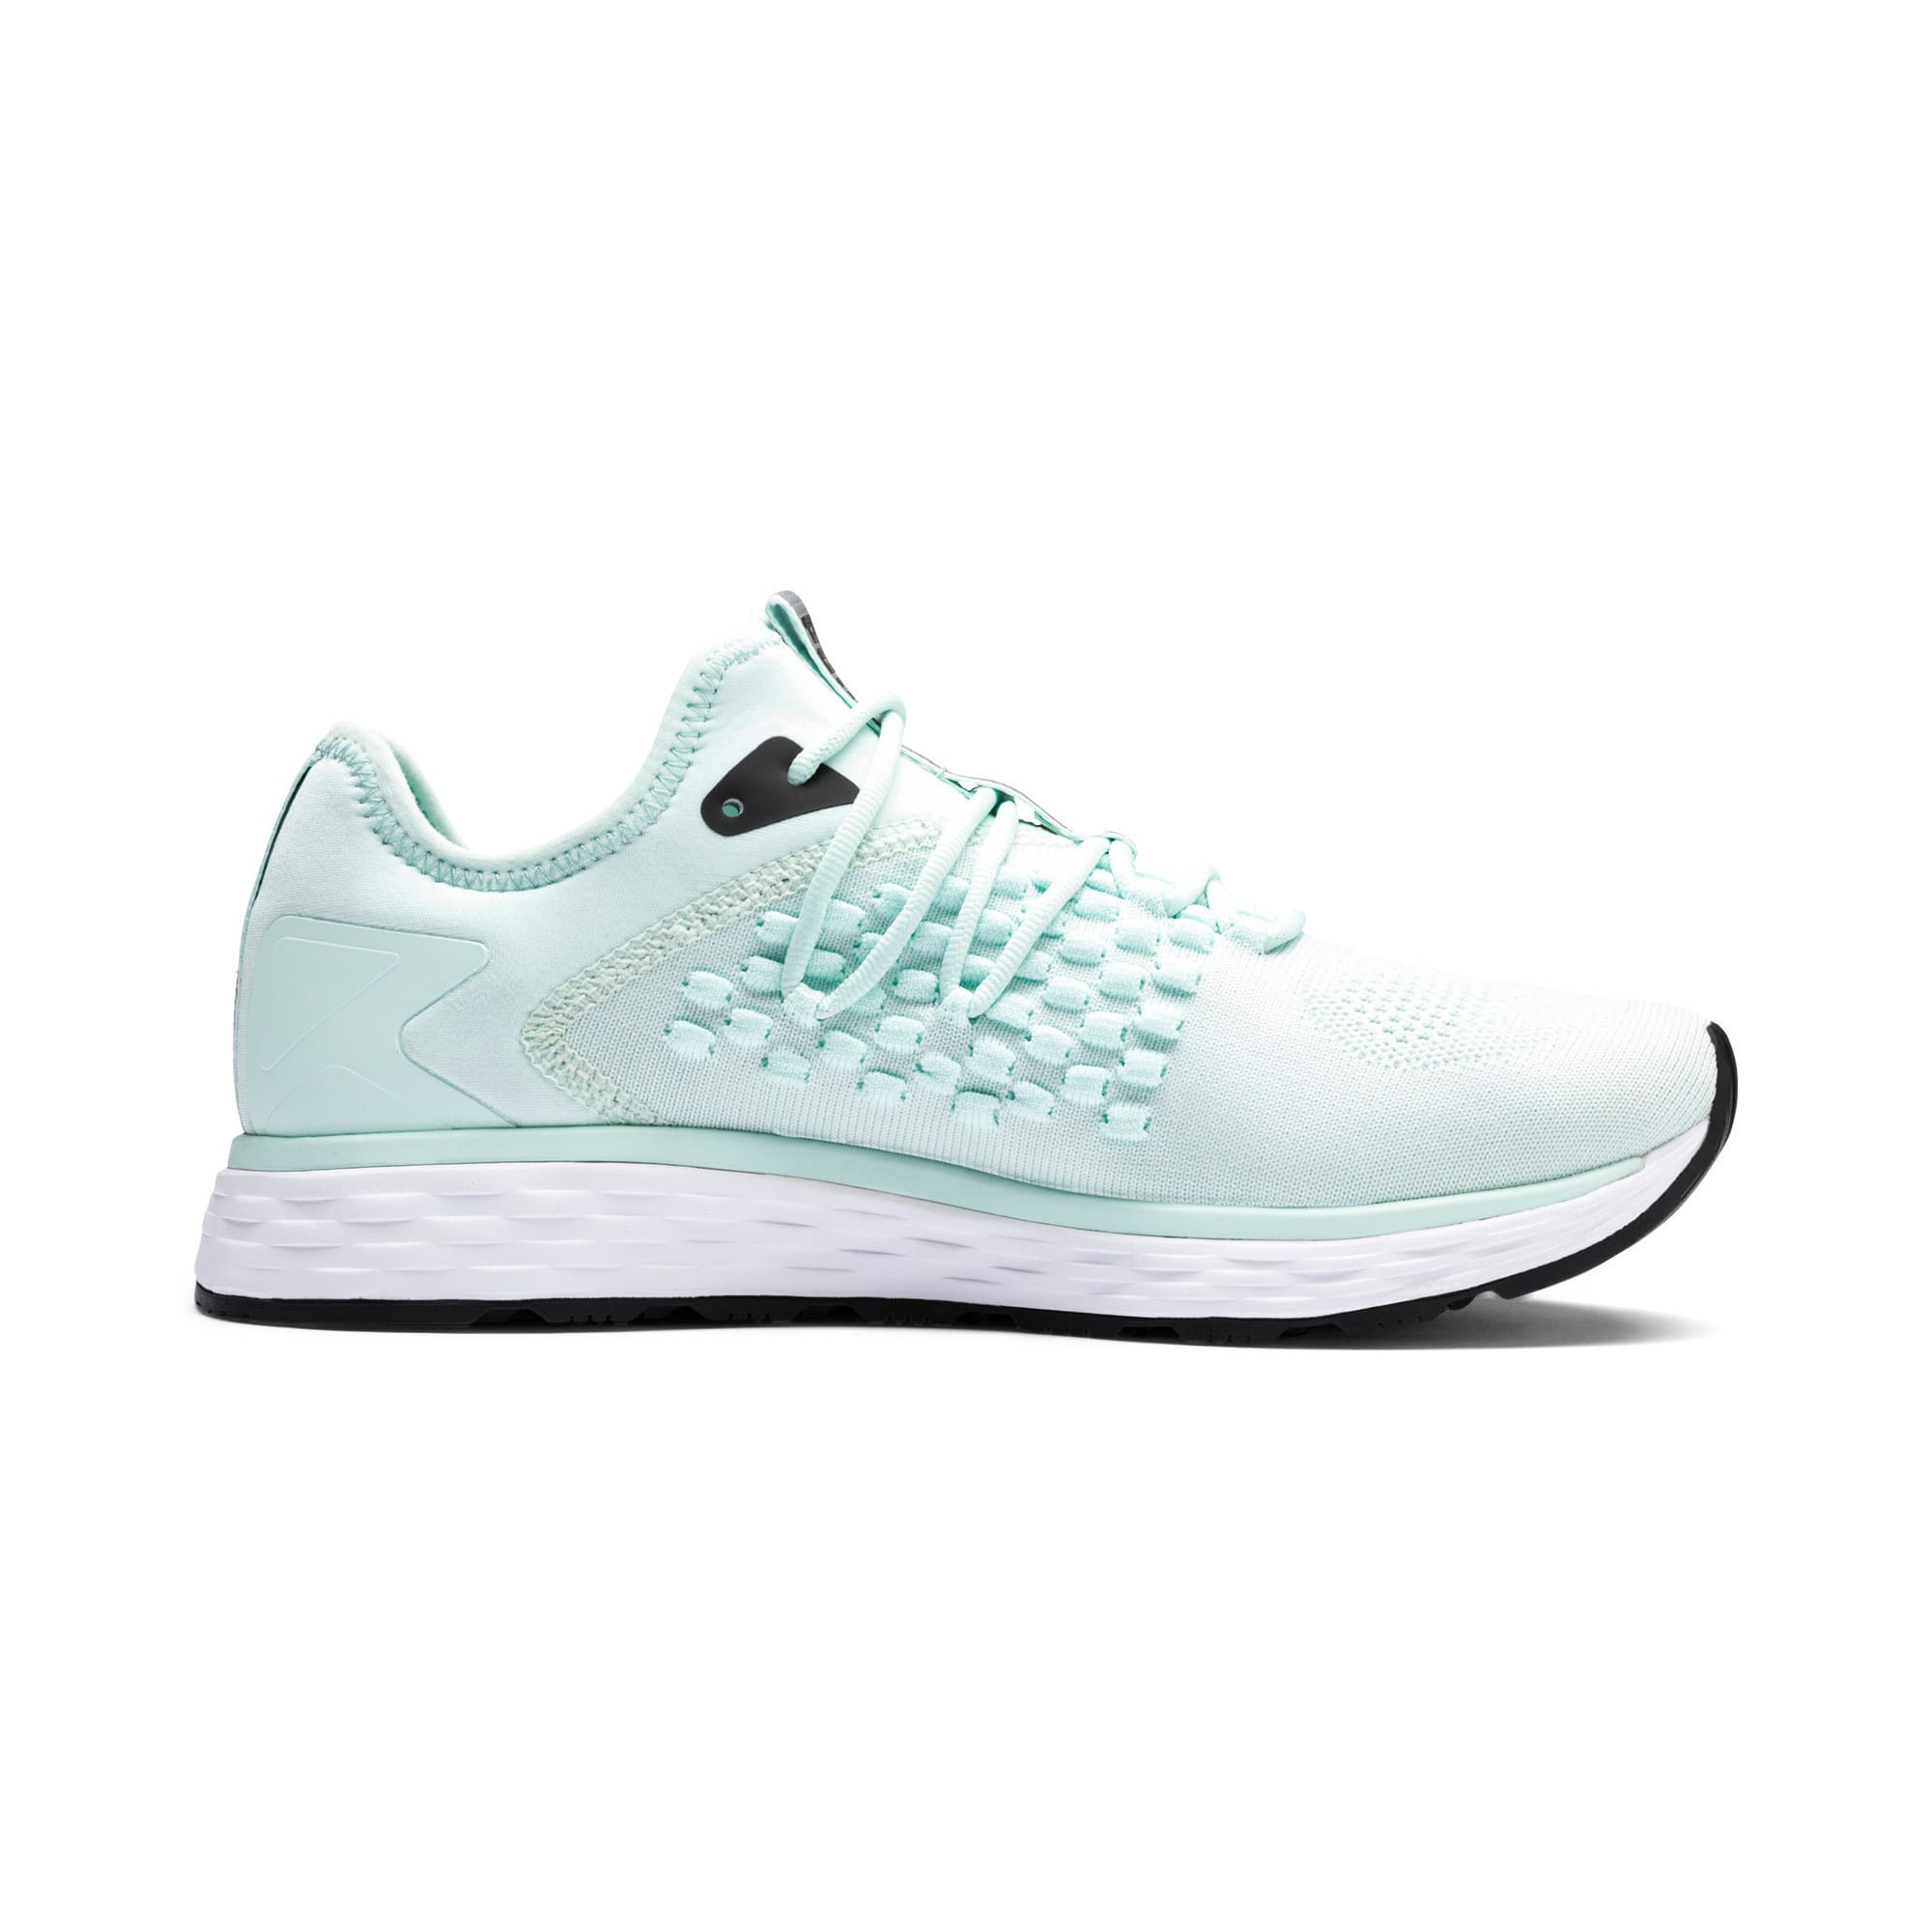 Thumbnail 6 of SPEED 600 FUSEFIT Women's Running Shoes, Fair Aqua-Puma White, medium